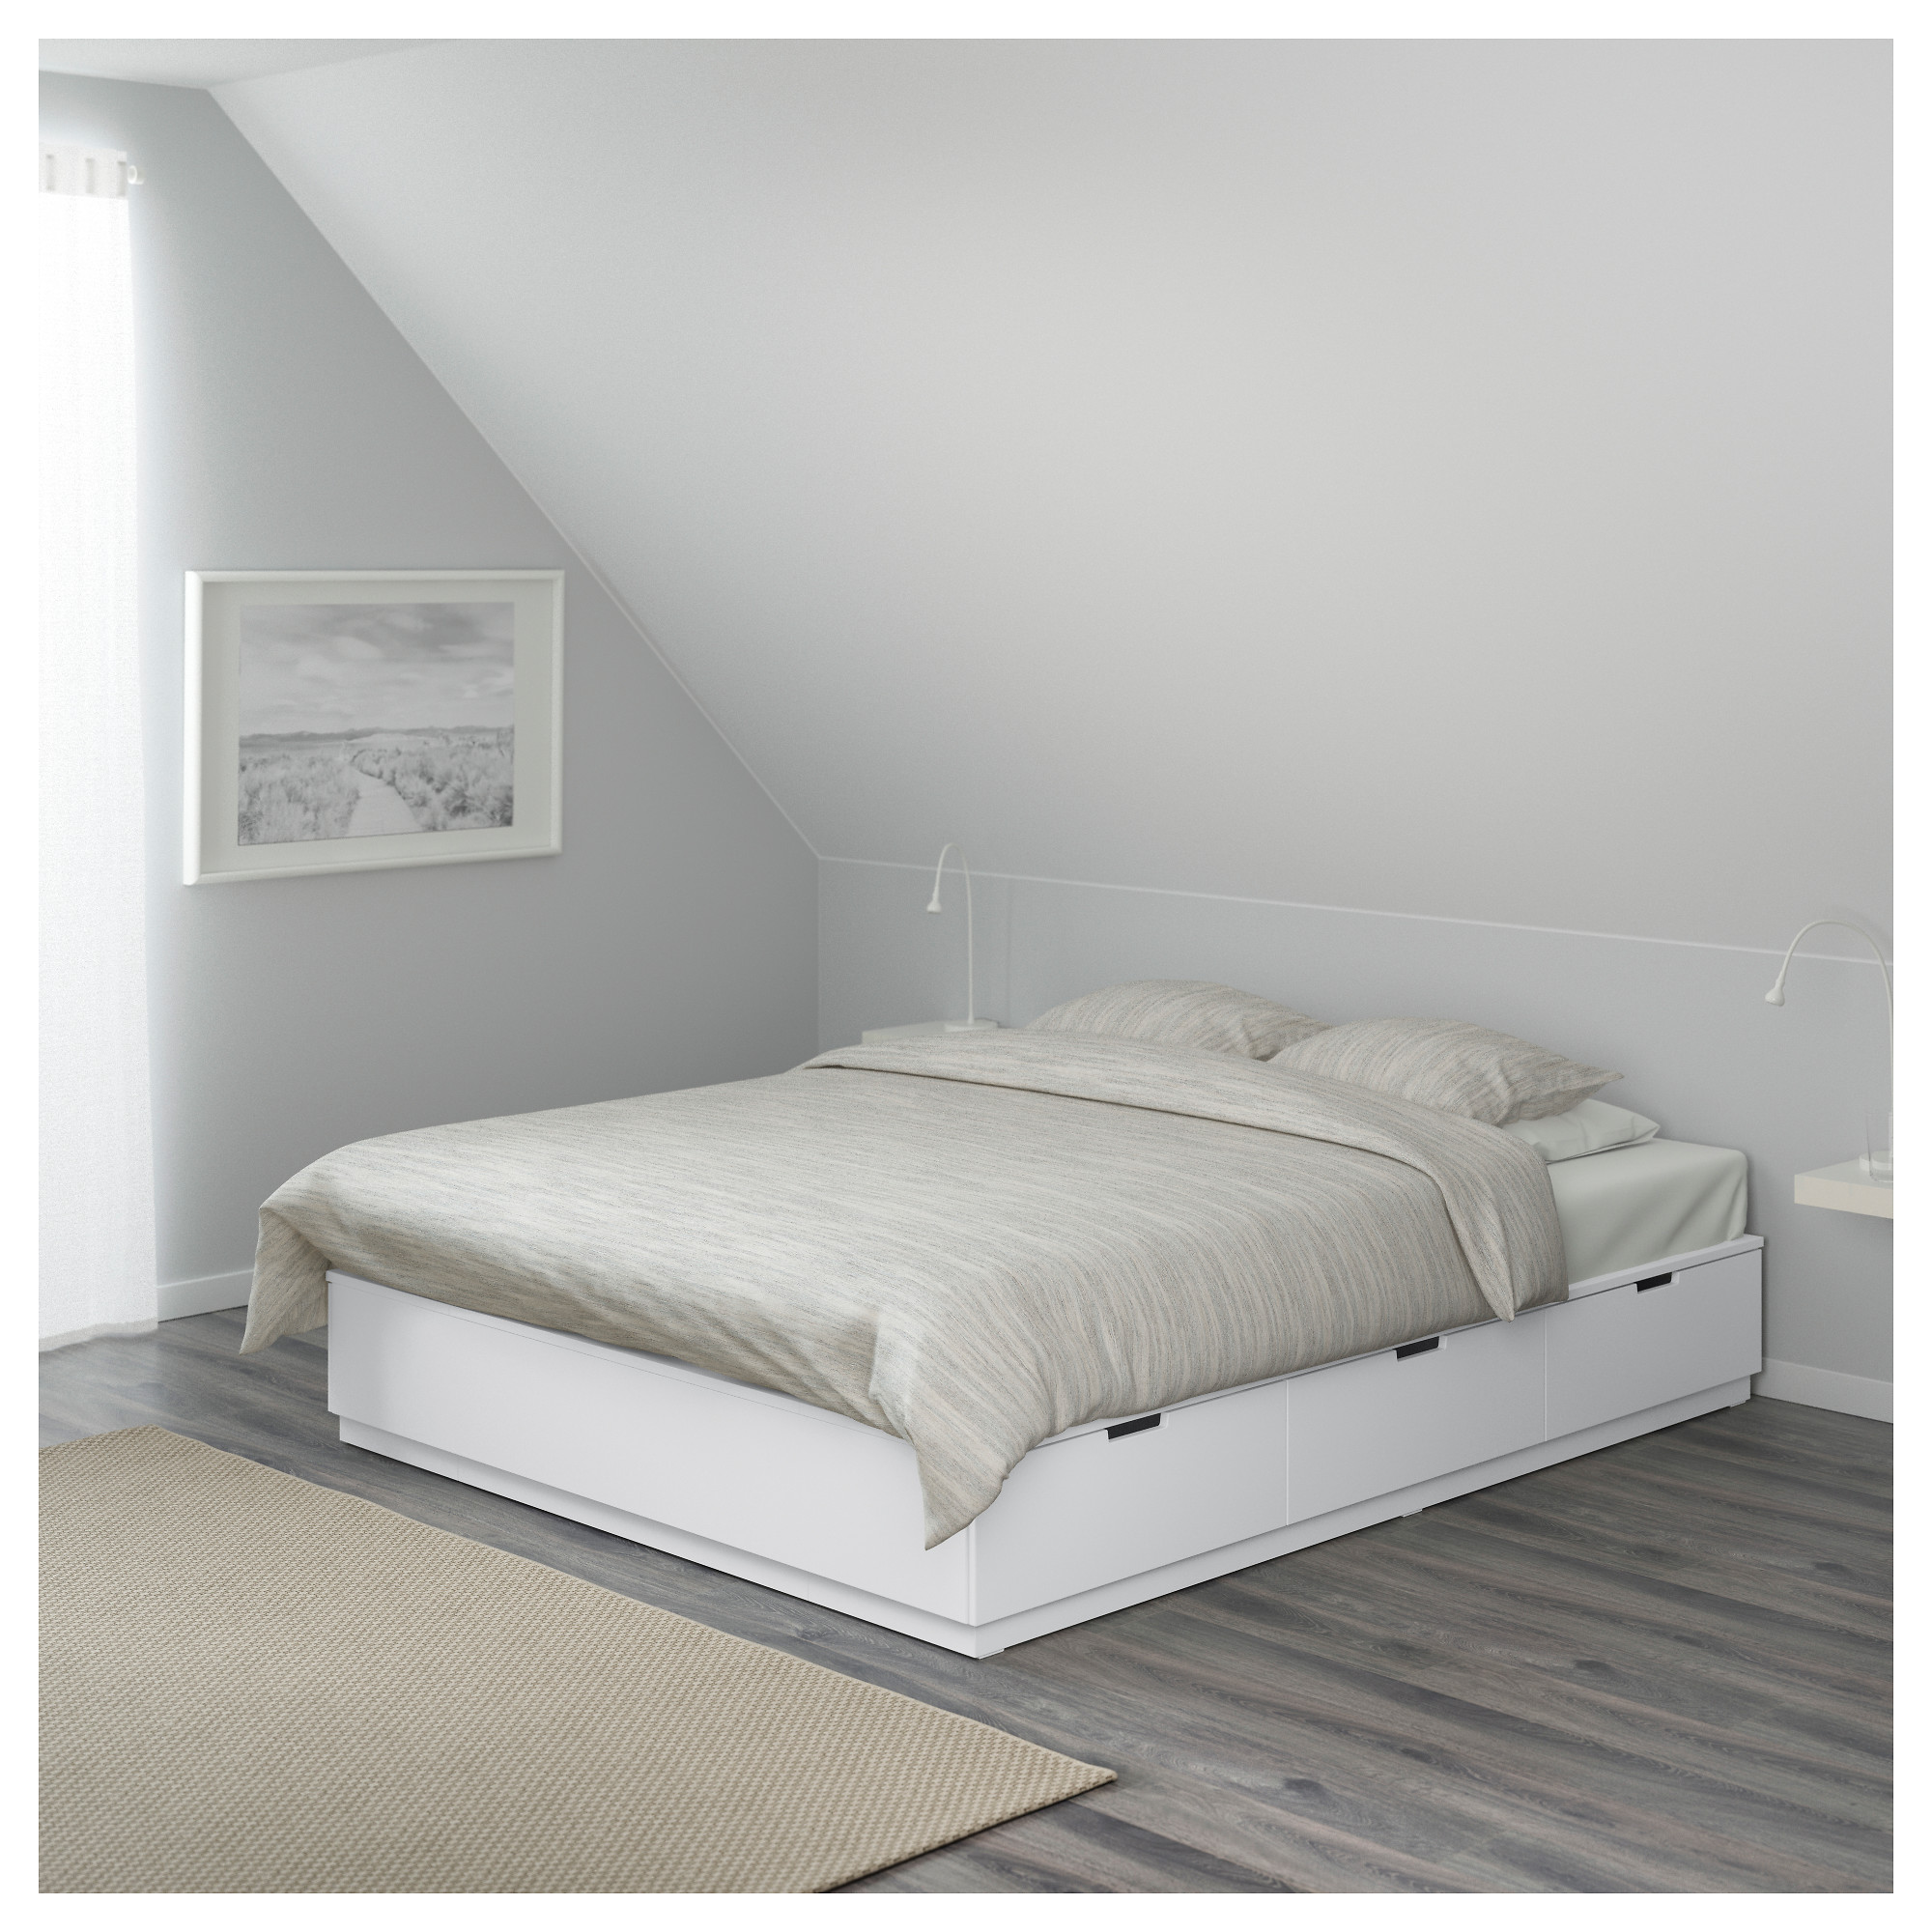 Bed frame with storage - Bed Frame With Storage 7